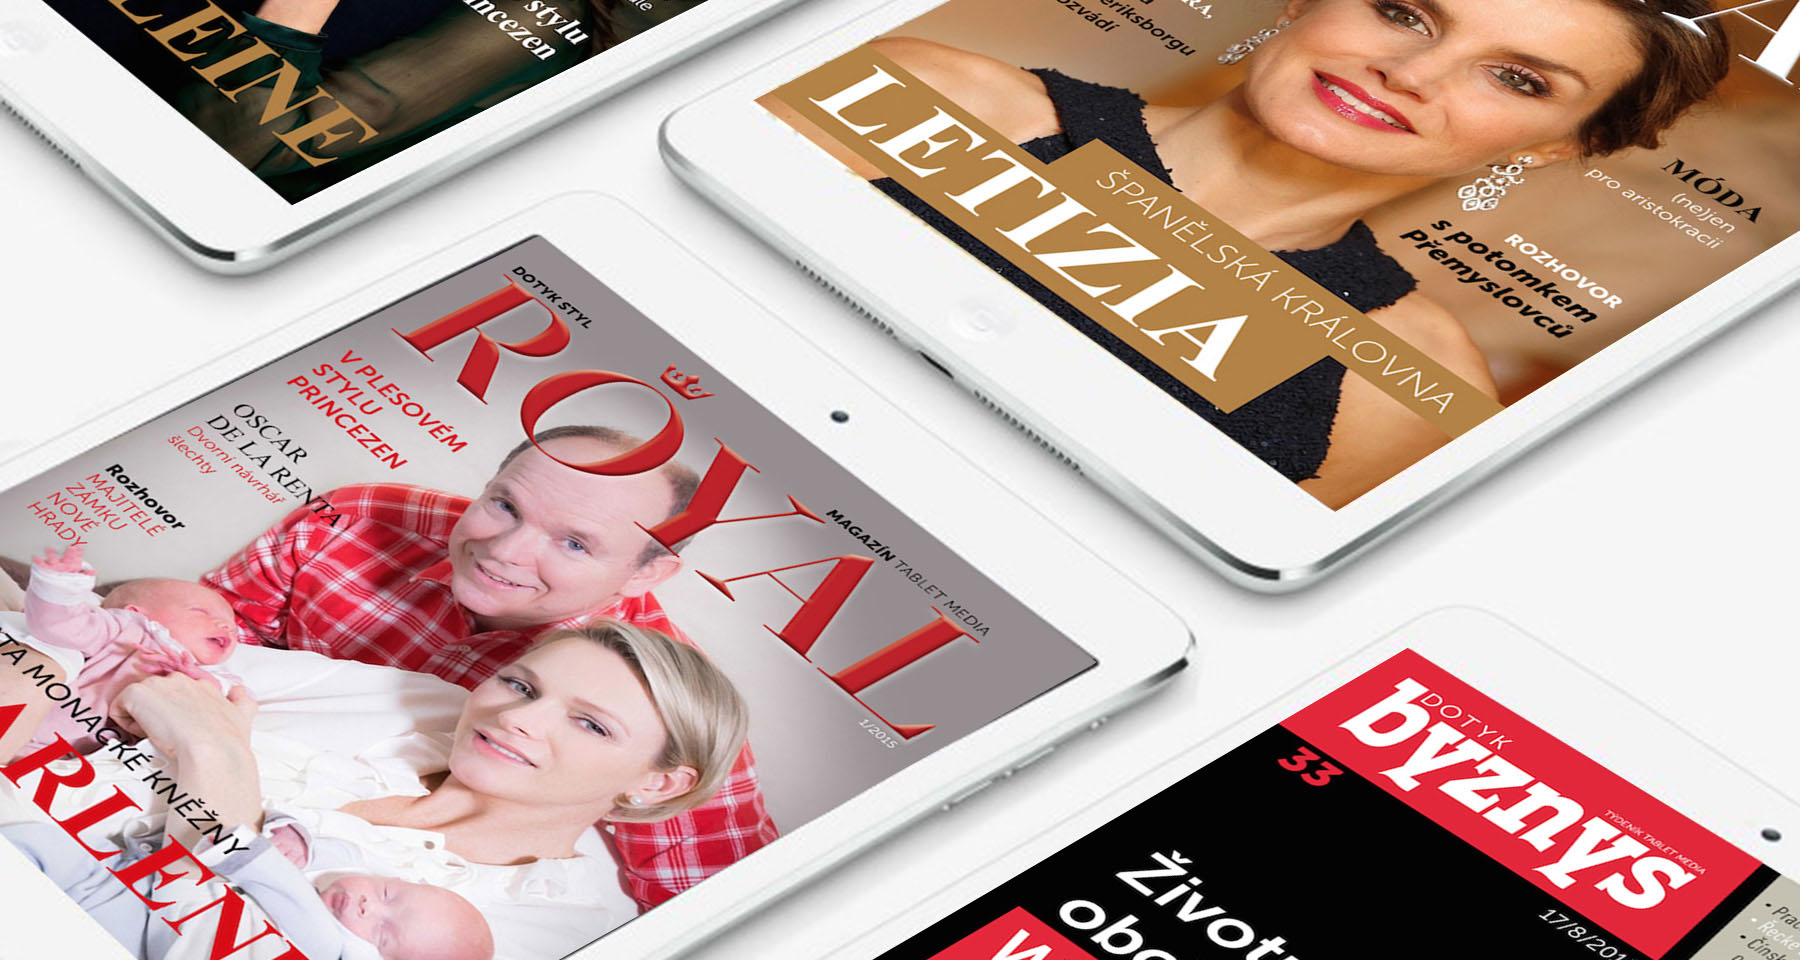 Advertiser-supported tablet-only magazines keep growing at Tablet Media